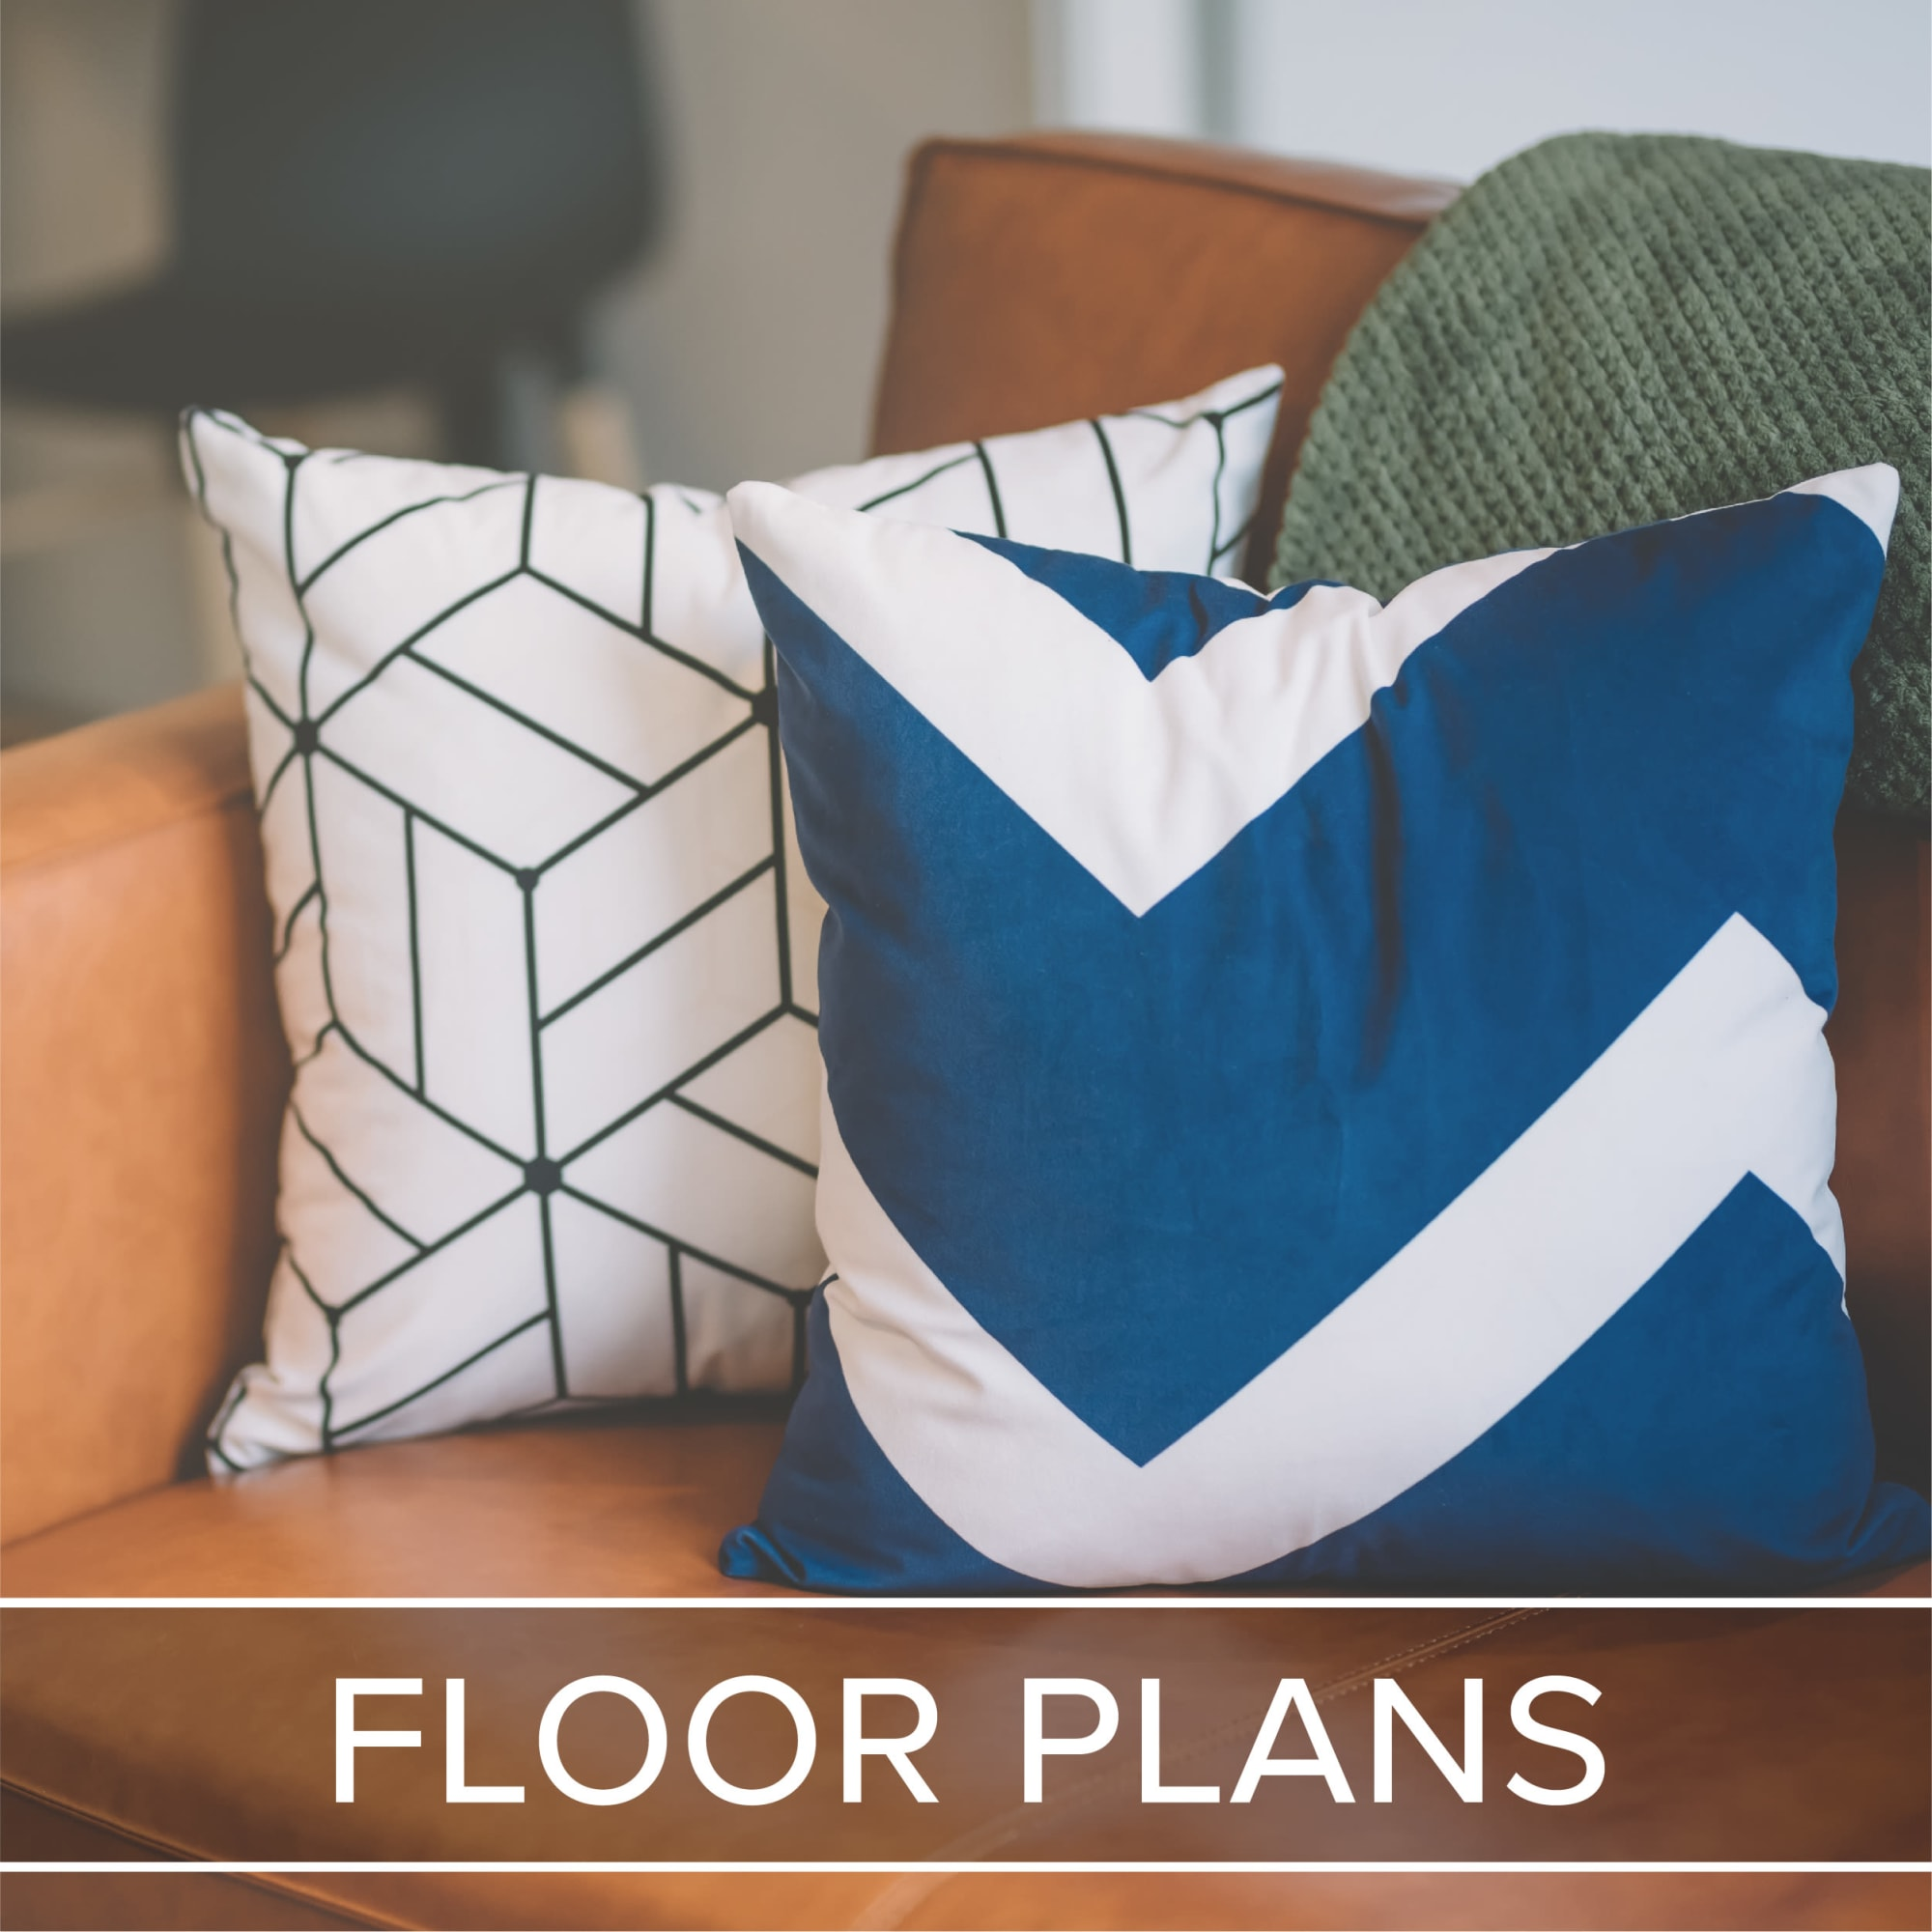 View our floor plan options at IMT Kingwood in Kingwood, Texas